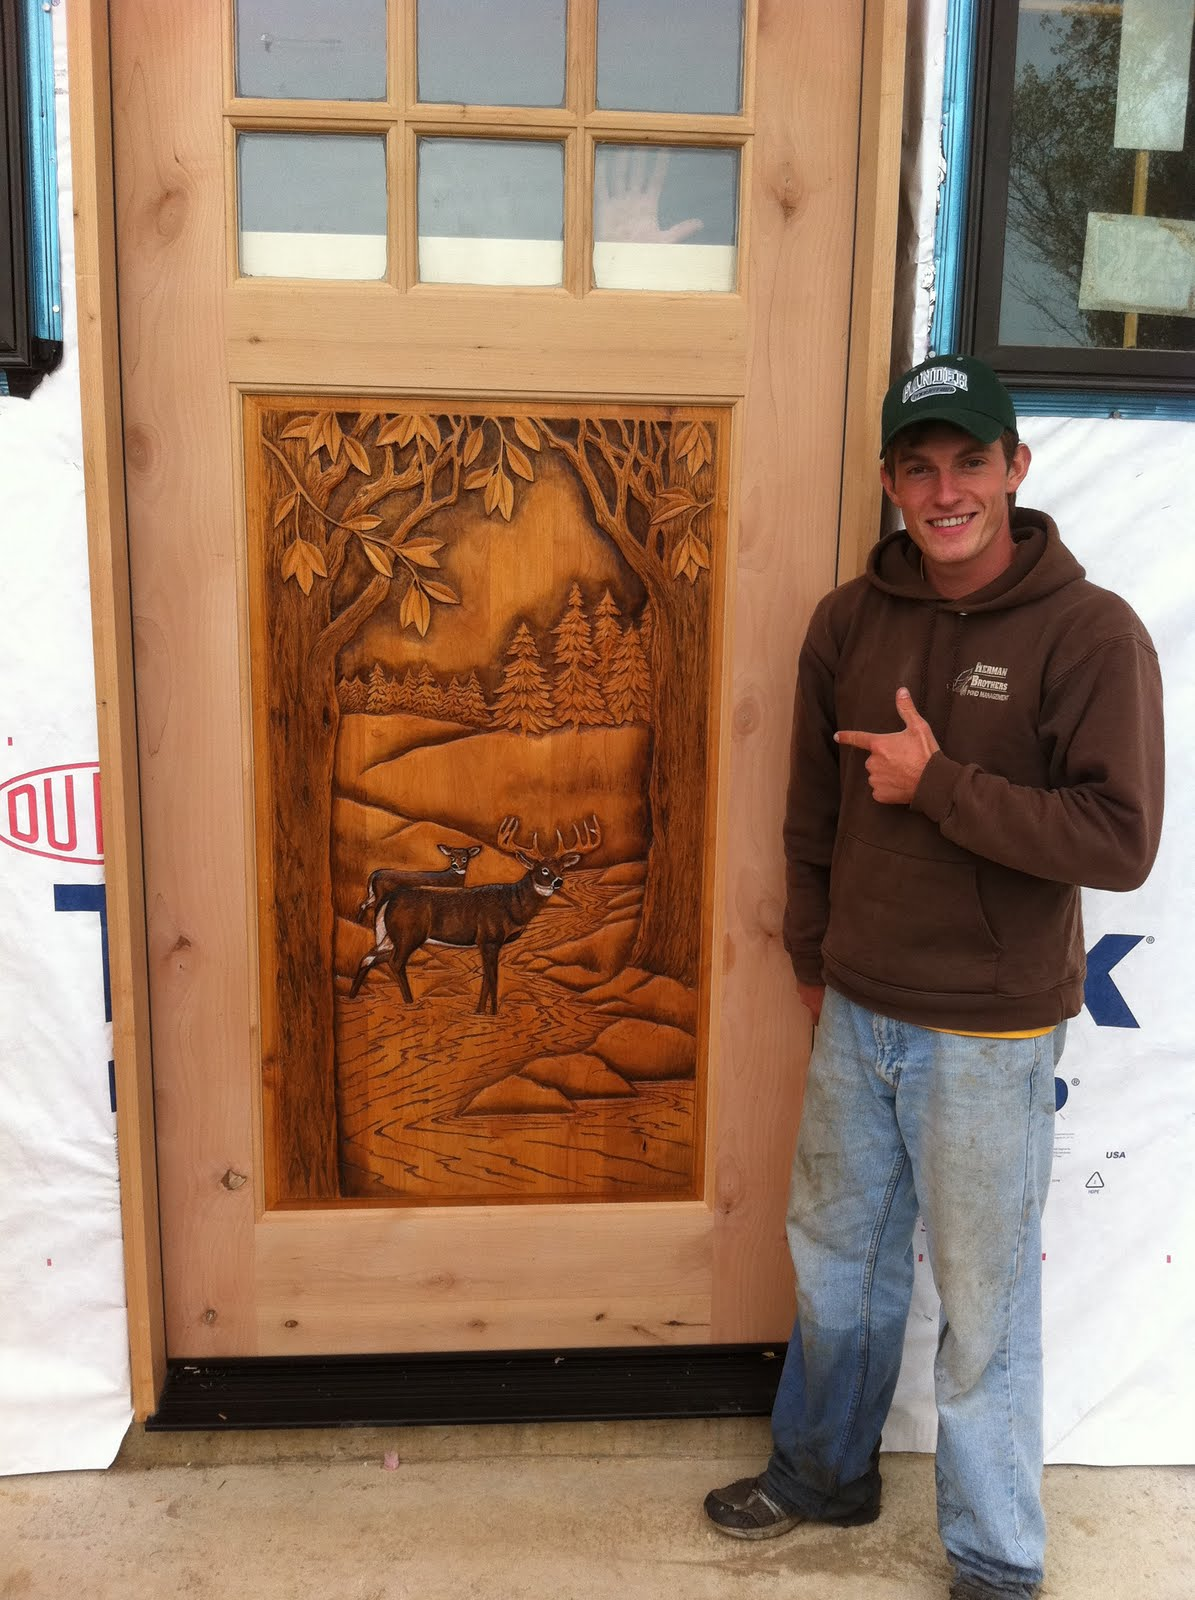 Woodworking cool wood projects PDF Free Download